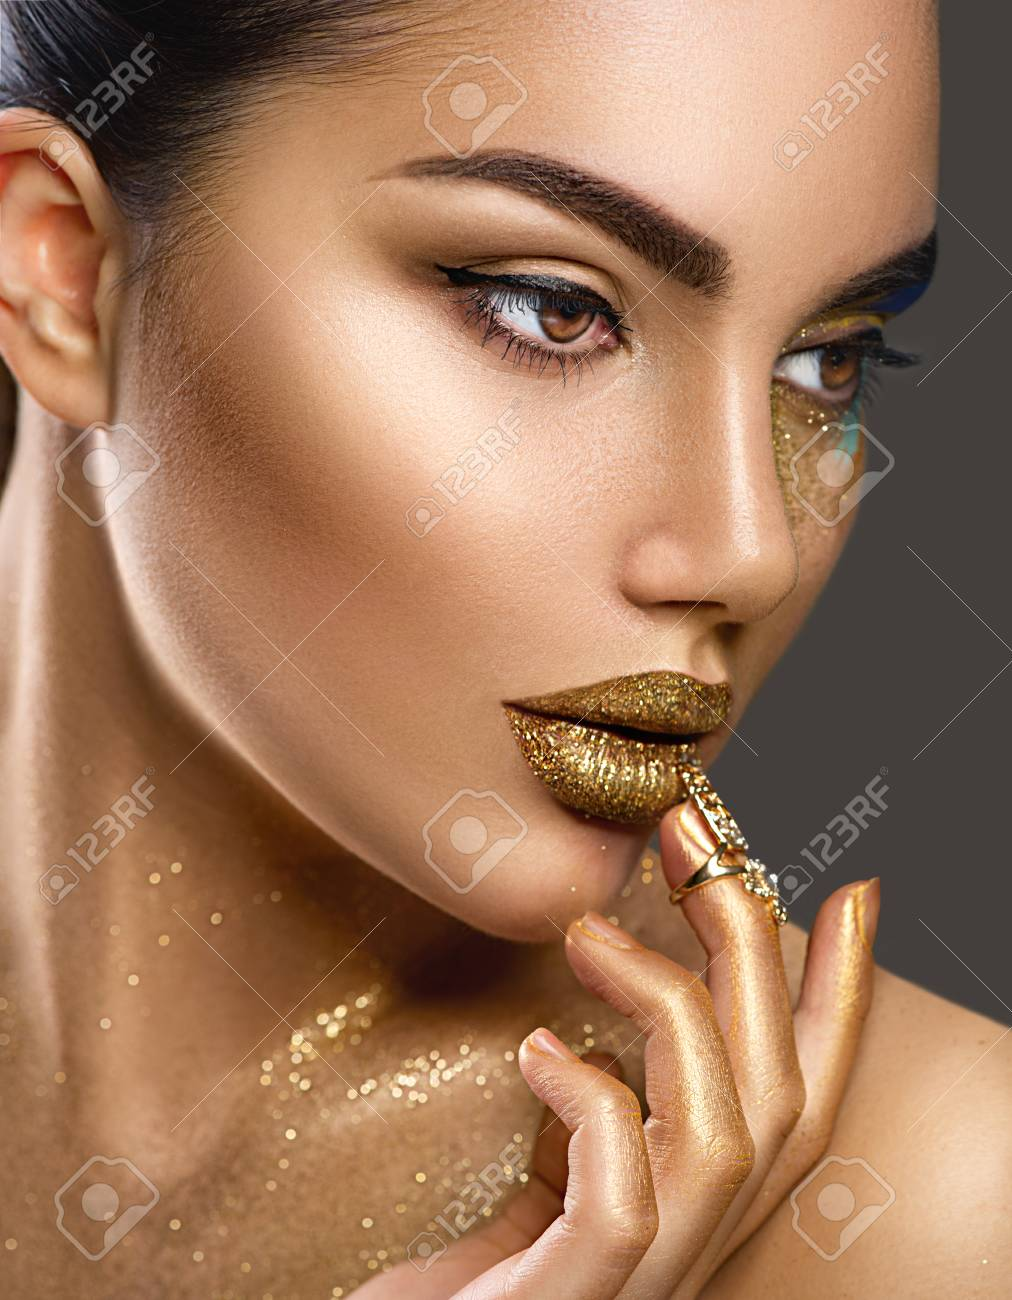 Fashion art makeup. Portrait of beauty woman with golden skin. Glamour shiny professional makeup - 95802170